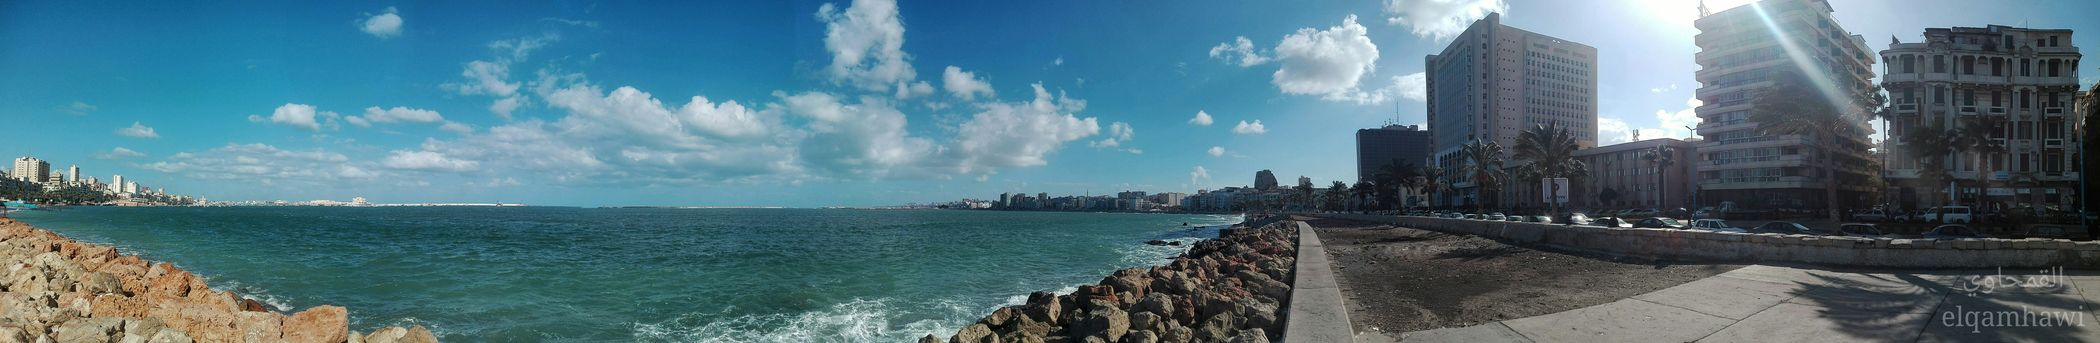 Panorama picture taken with mobile اسكندرية #alexandria Mobilephotography Mobile Phone Photography Egypt Alexandria Skyscraper Architecture Sky Cityscape Urban Skyline Water Cloud - Sky City Outdoors Building Exterior Panoramic Day No People Tree Nature